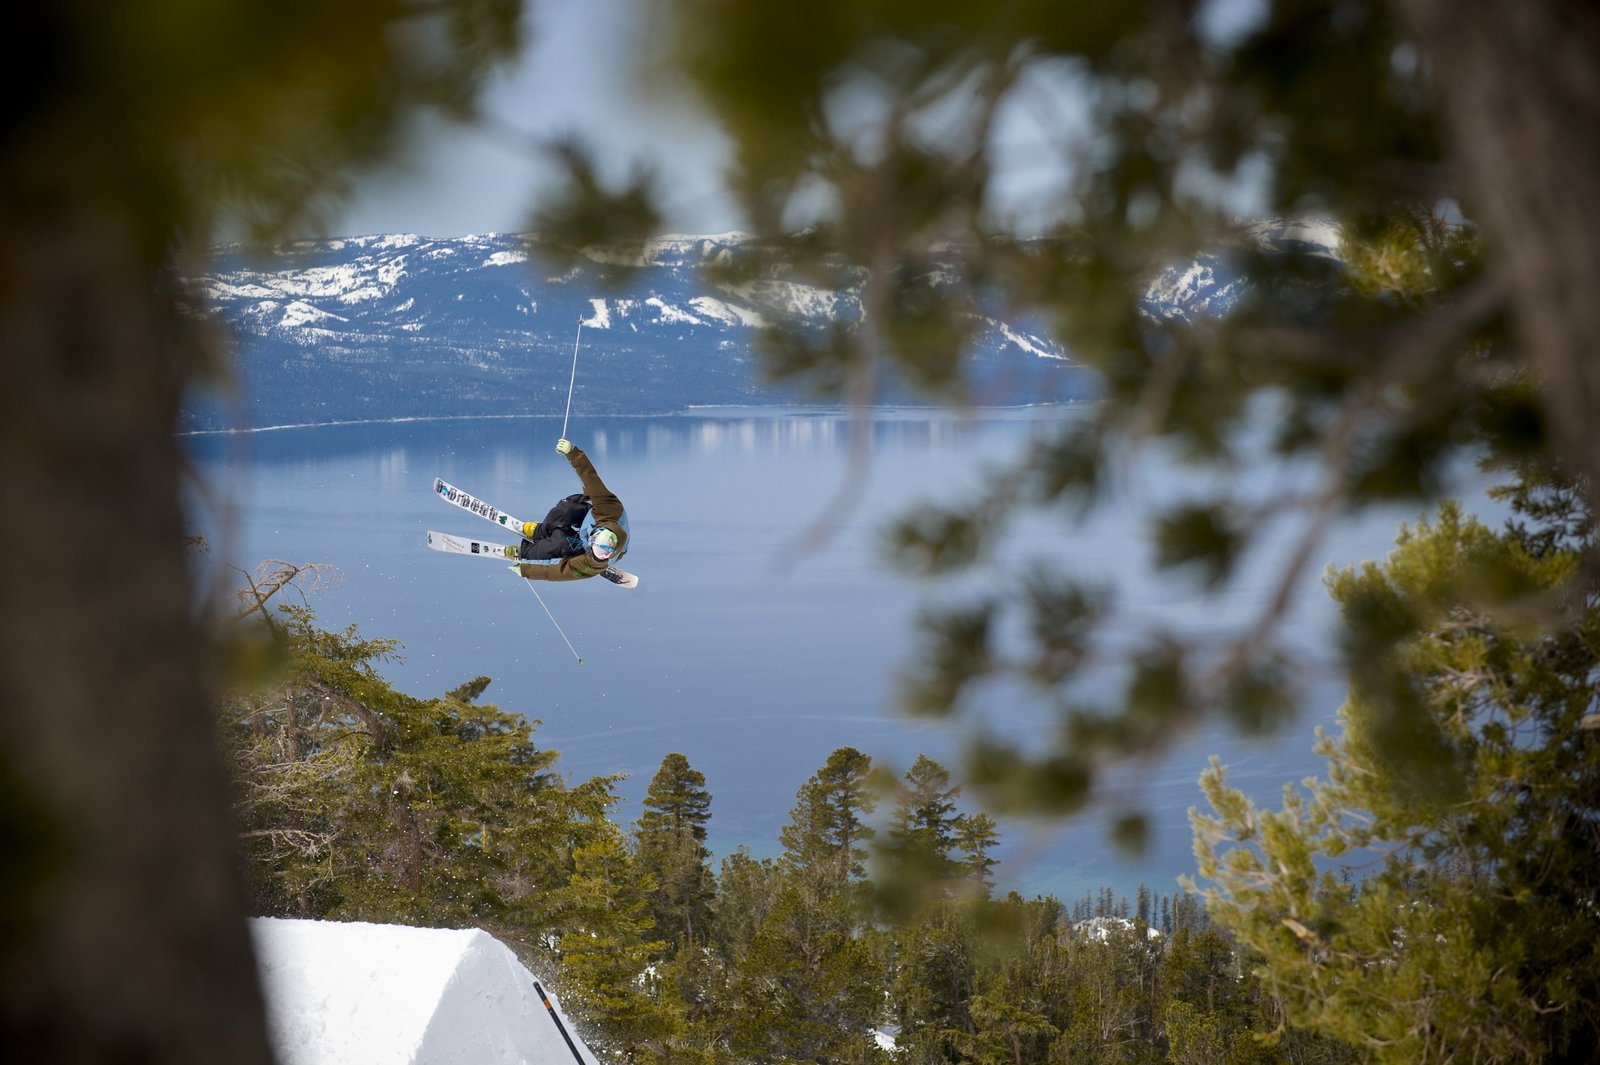 Sick shot of cork 5 with lake tahoe in the back